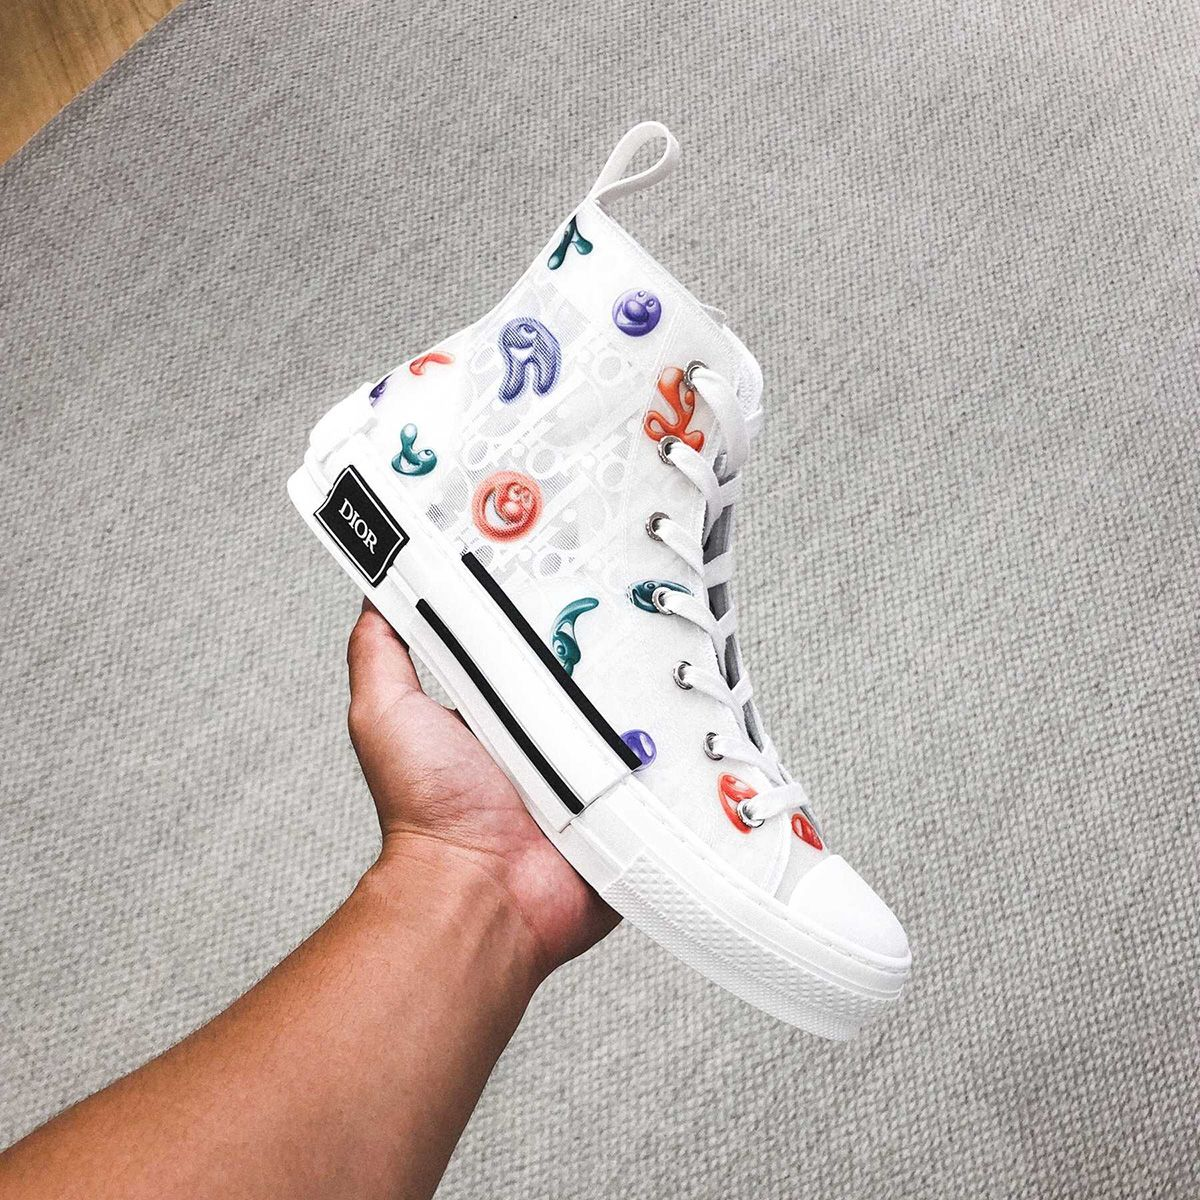 Dior's FW21 Sneakers Are Just Plain Fun & We Have Kenny Scharf to Thank 3